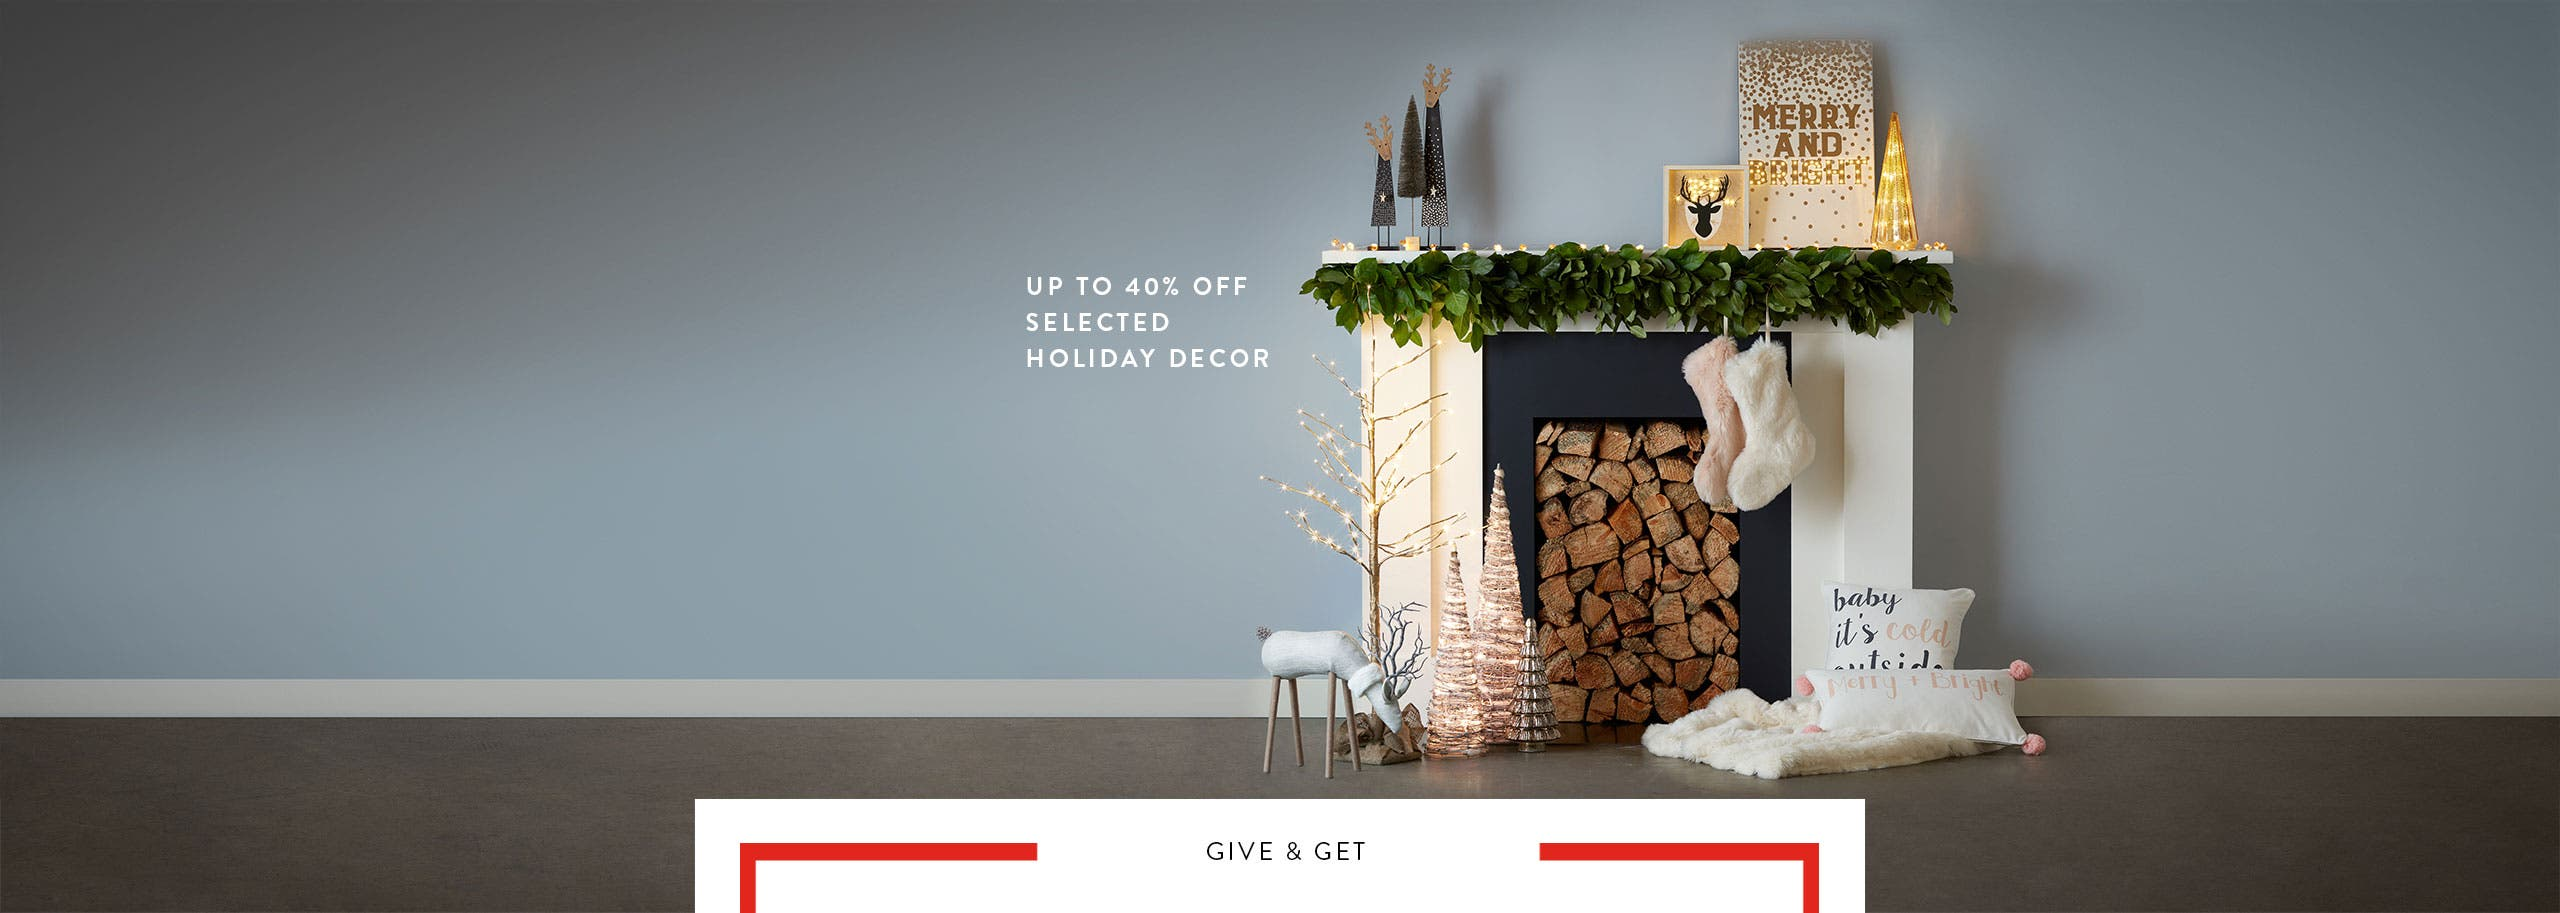 Save up to 40% on holiday decor.